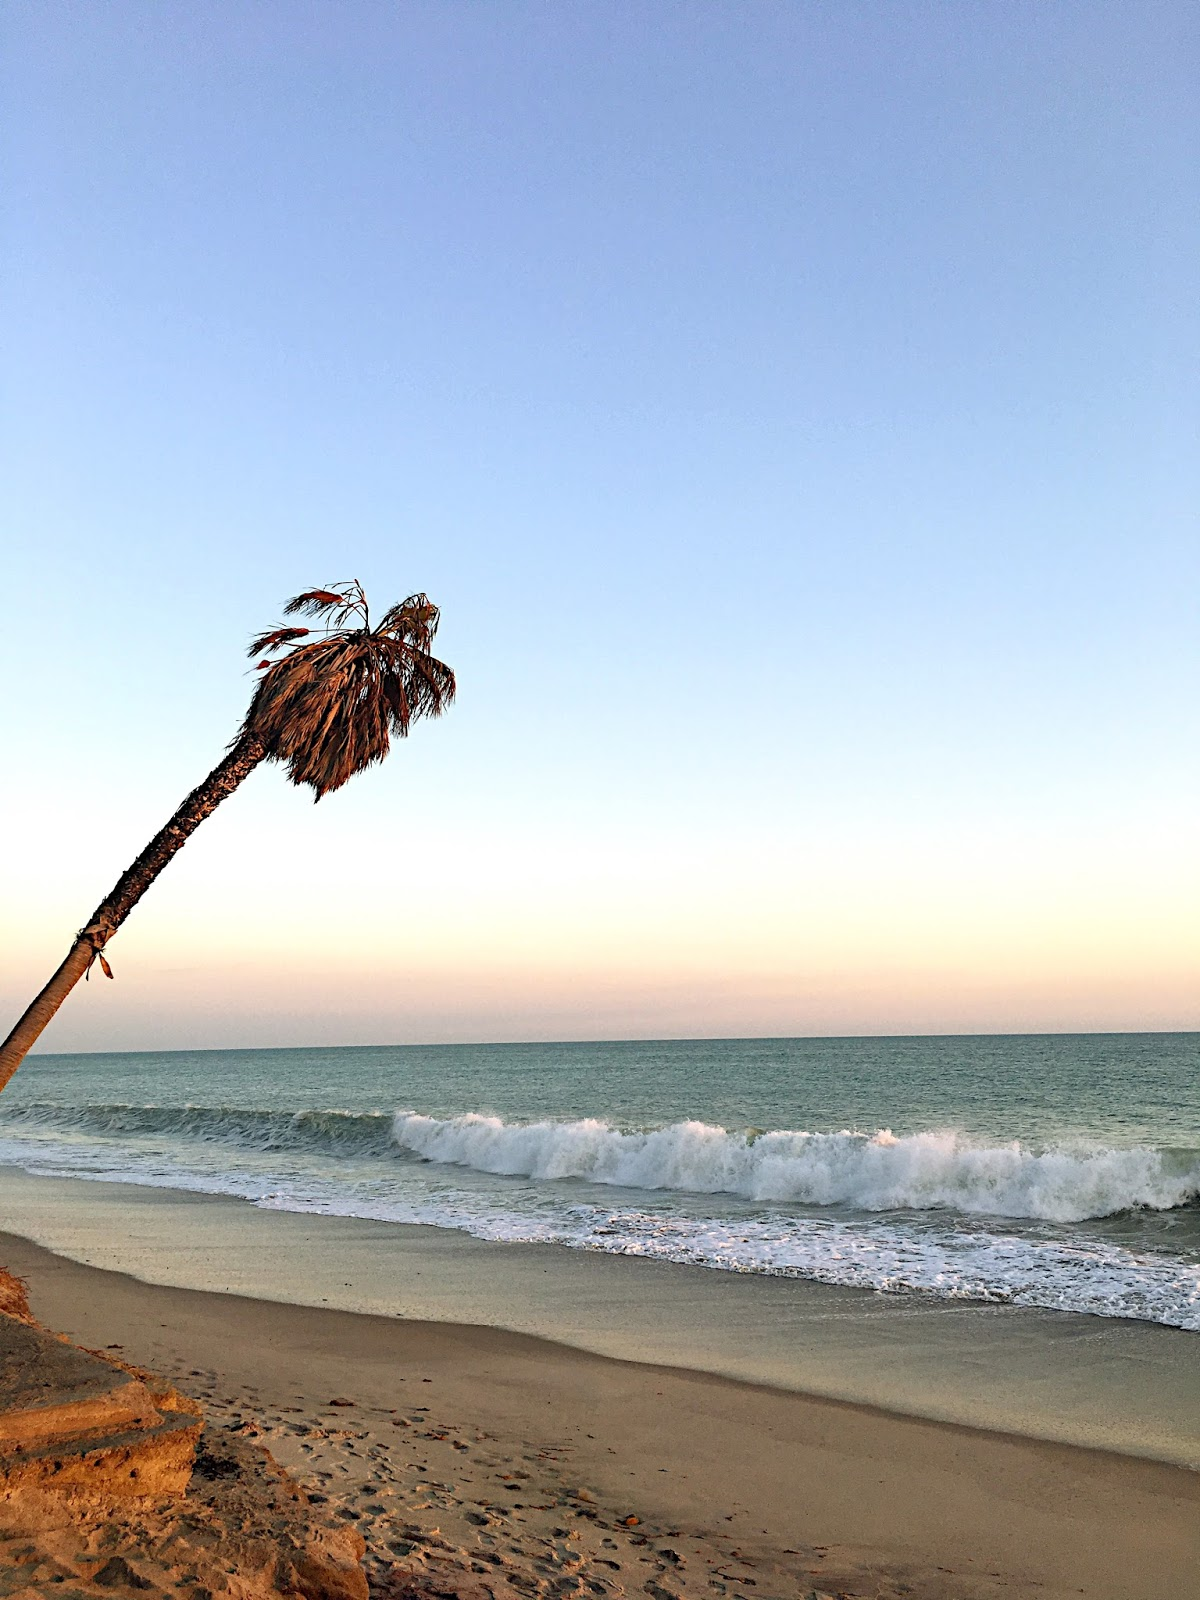 Palm Tree on the beach, Single Palm Tree